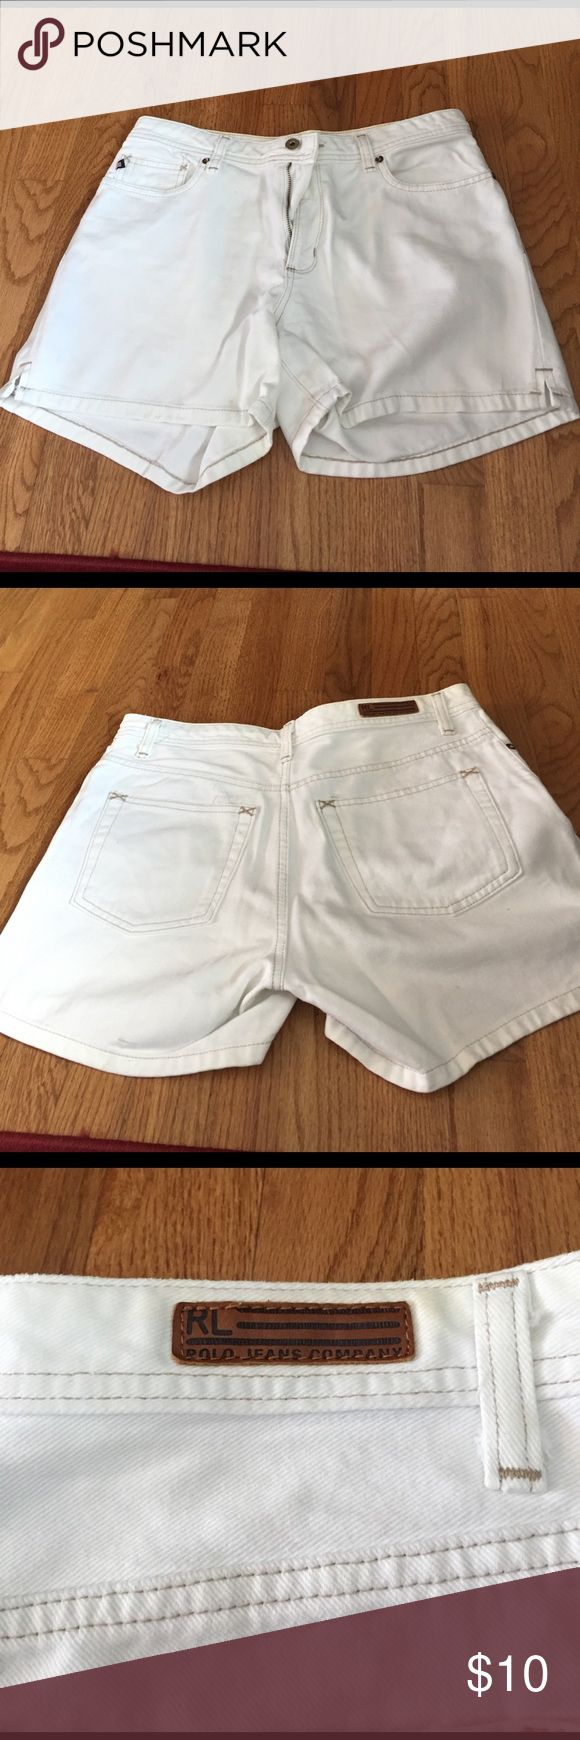 White womens jean shorts polo Ralph polo white jean shoes Great condition and quality Polo by Ralph Lauren Shorts Jean Shorts